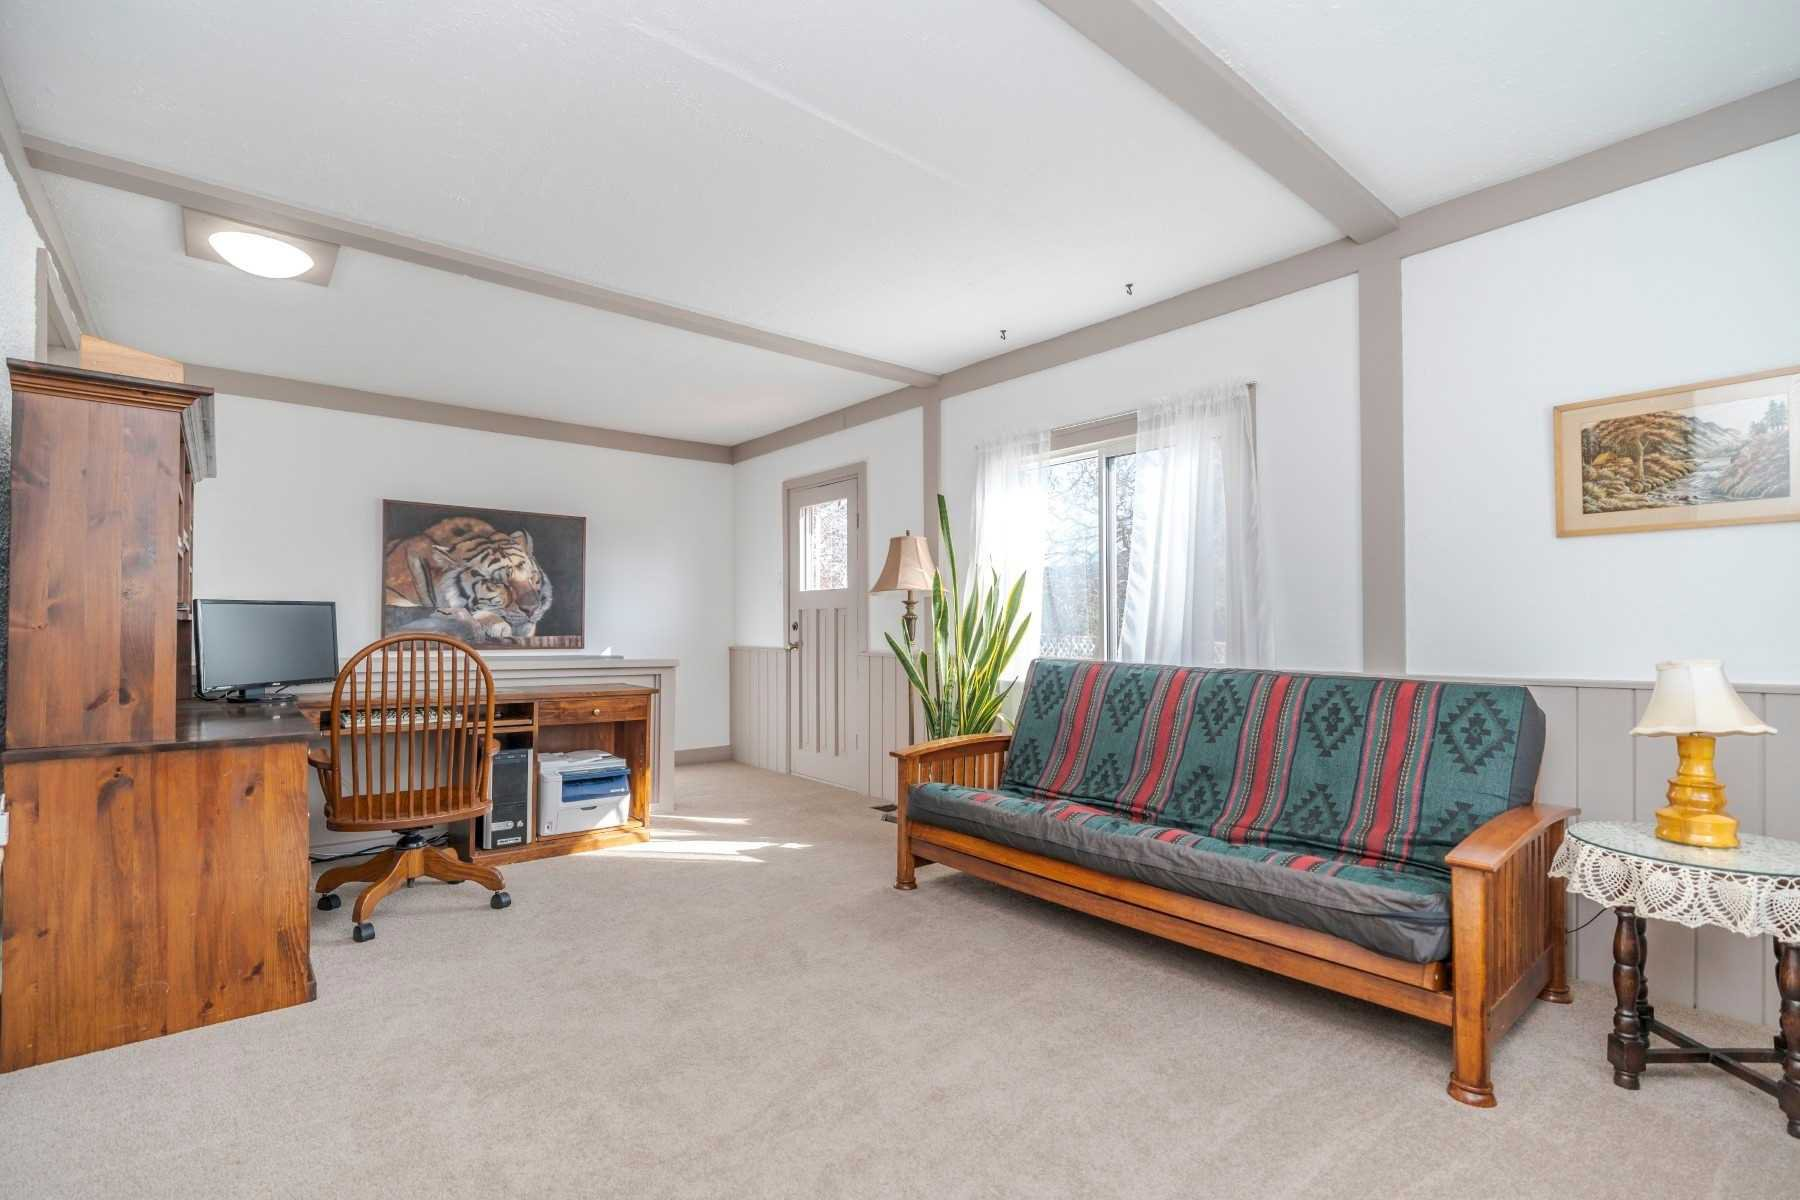 Photo 11: Photos: 1009 S Centre Street in Whitby: Downtown Whitby House (Bungalow) for sale : MLS®# E4714116